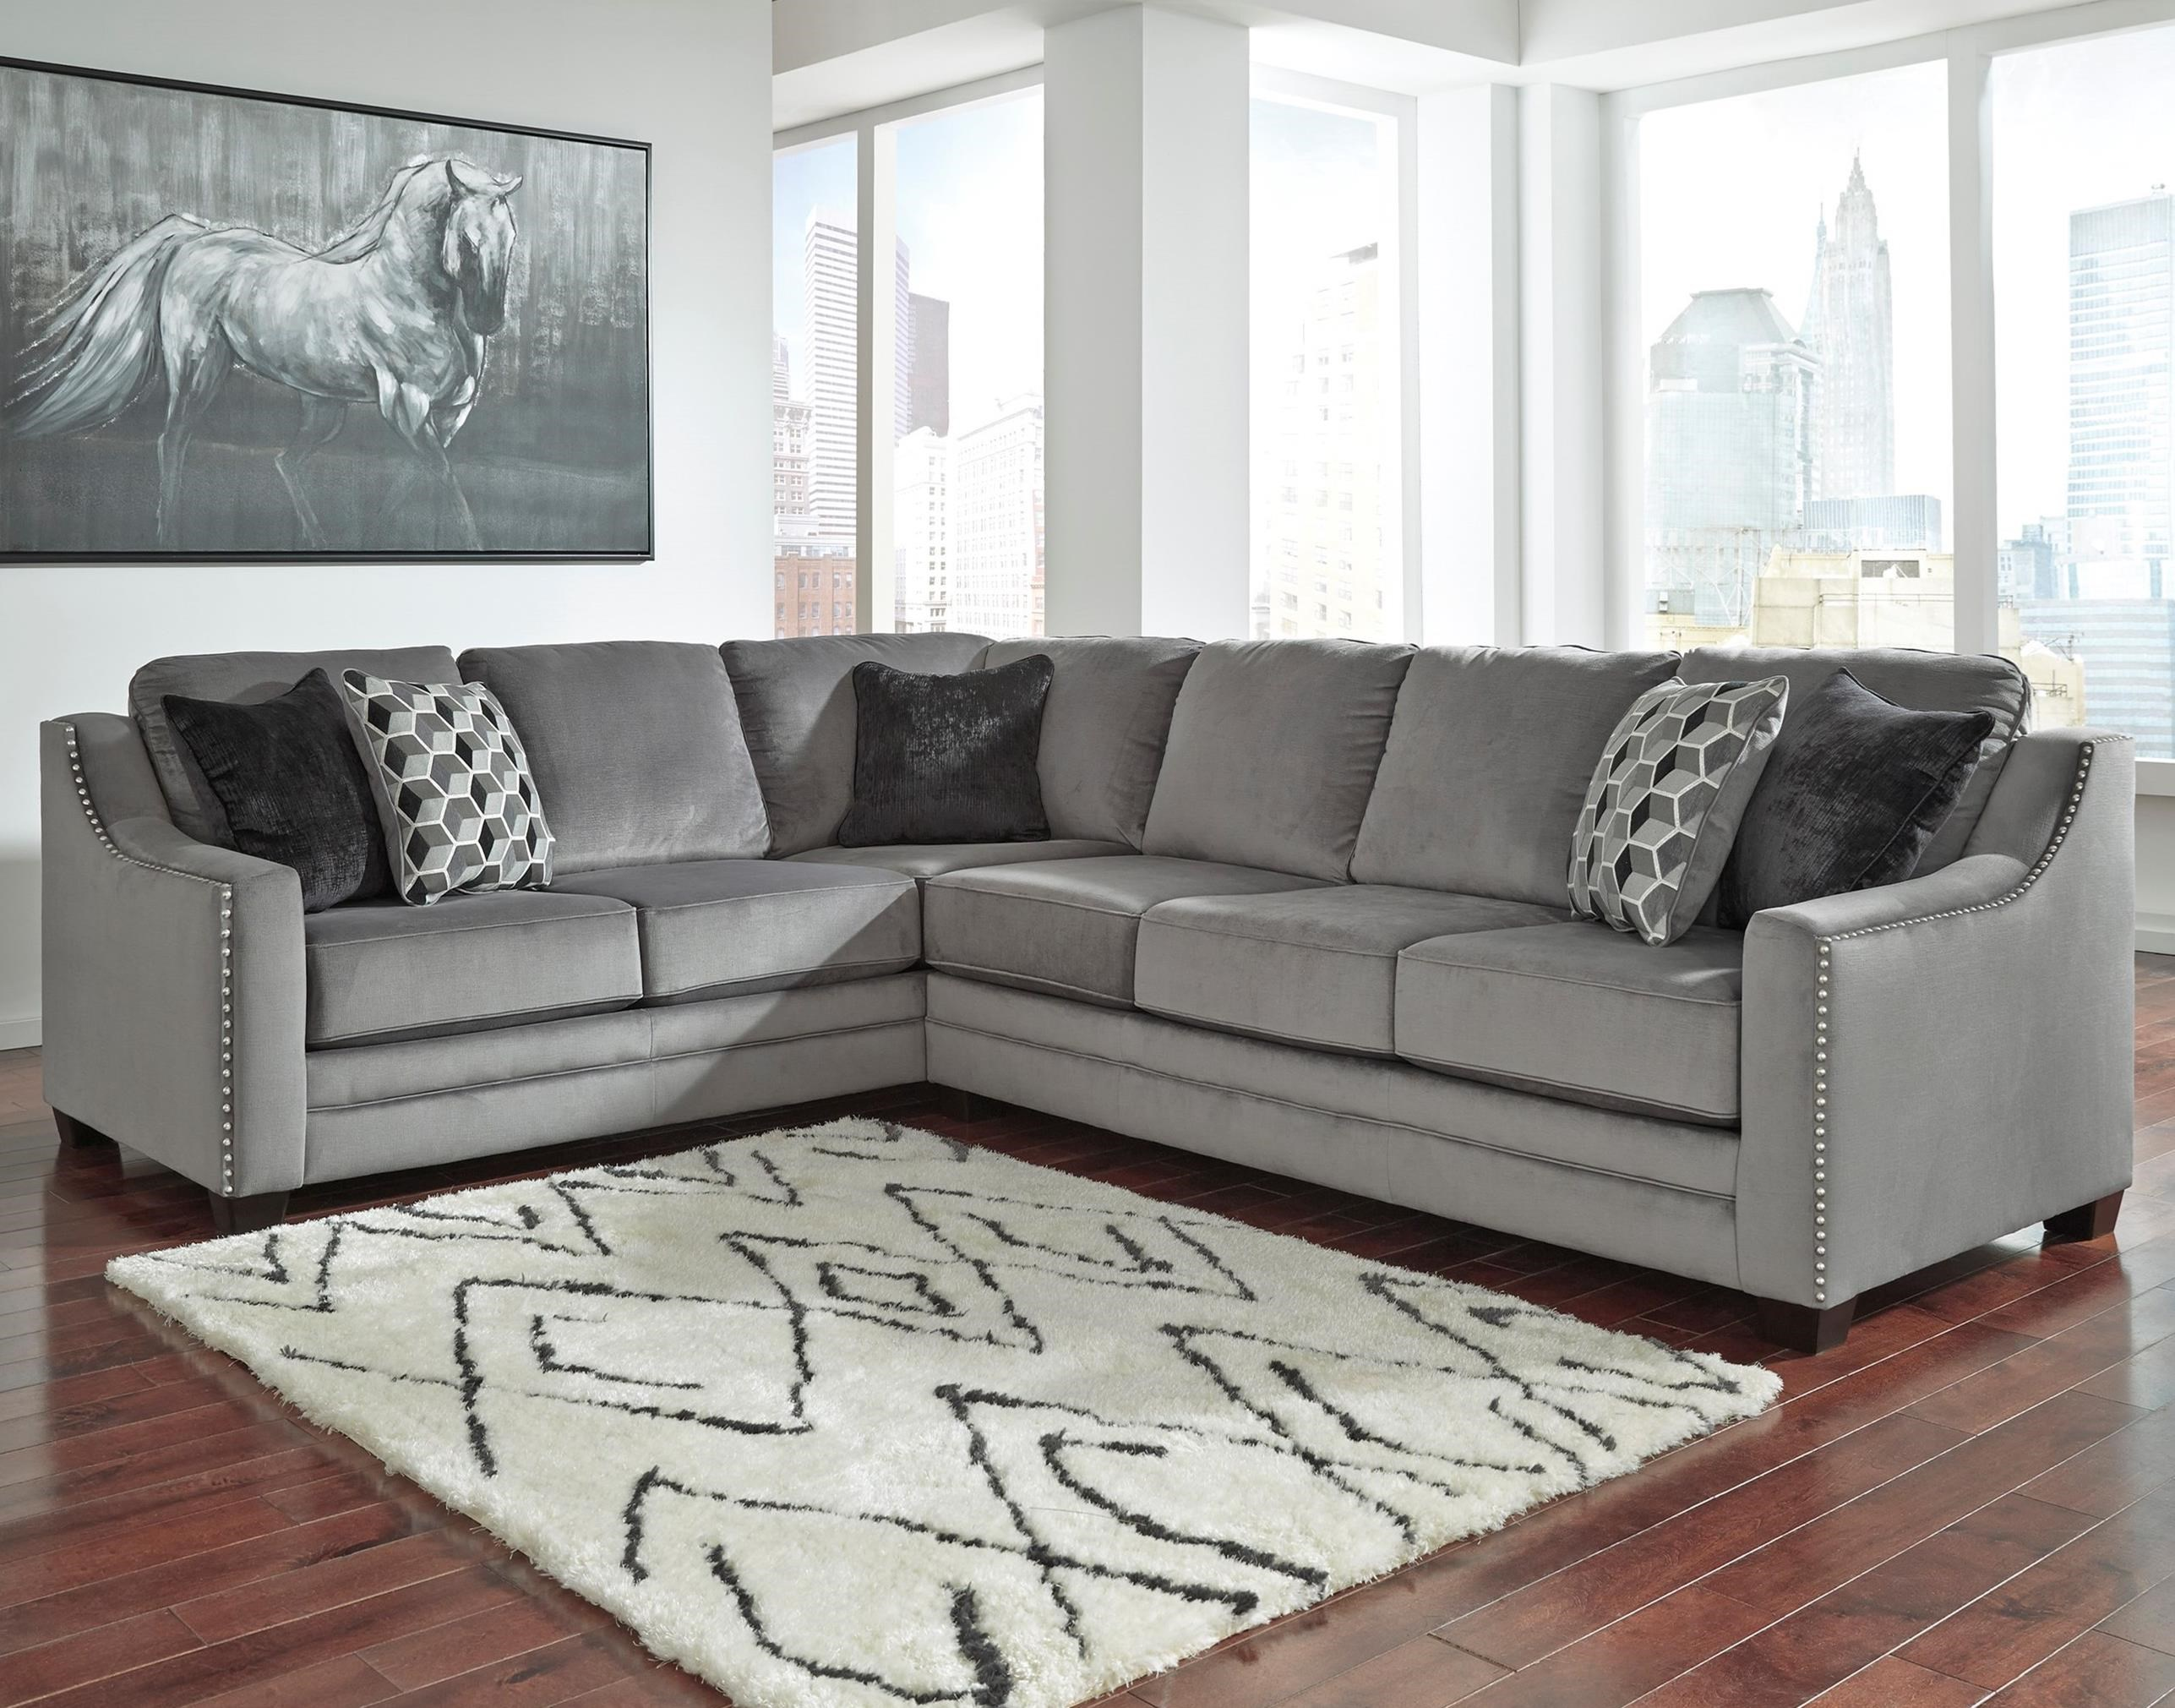 Phenomenal Contemporary 2 Piece Sectional With Right Sofa By Uwap Interior Chair Design Uwaporg